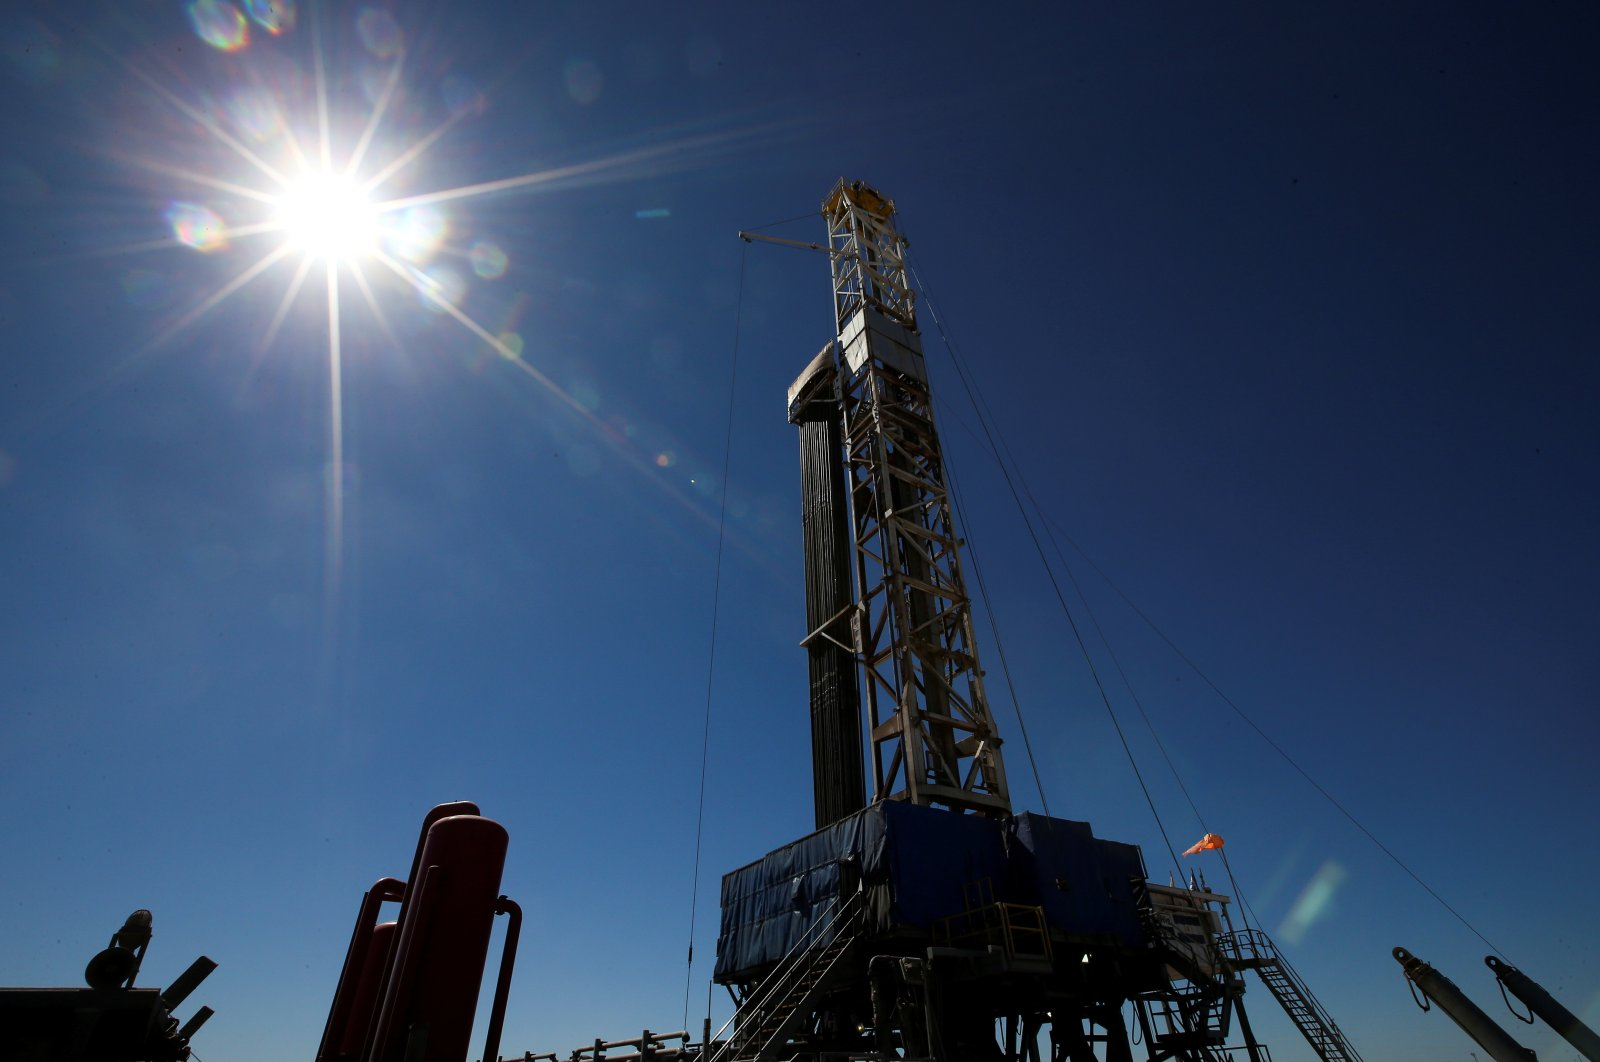 A drilling rig is seen at Vaca Muerta shale oil and gas drilling, in the Patagonian province of Neuquen, Argentina, Jan. 21, 2019. (Reuters Photo)